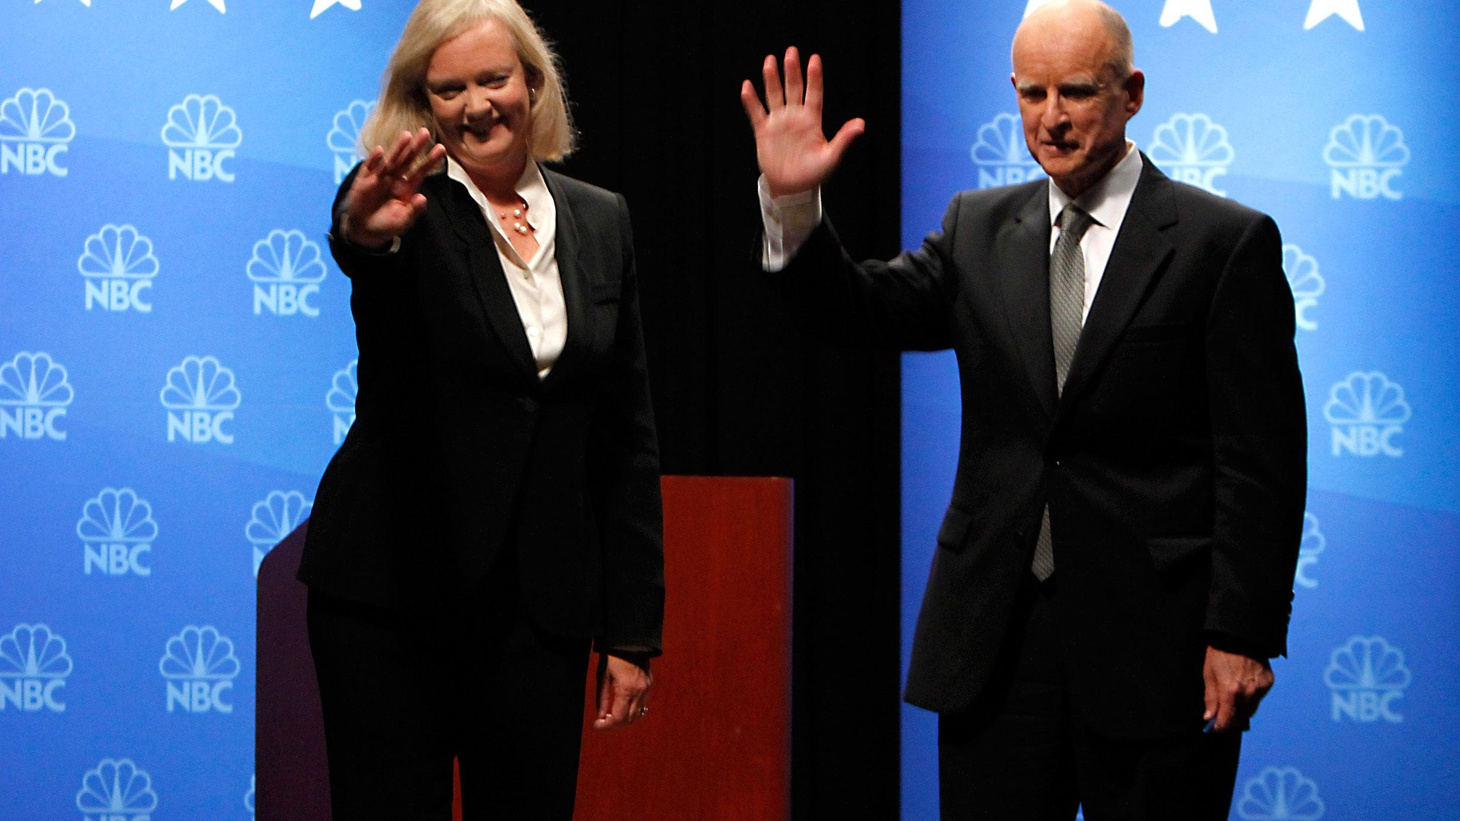 Meg Whitman and Jerry Brown met tonight again for the third and last time in a debate. We hear soundbites and analysis.